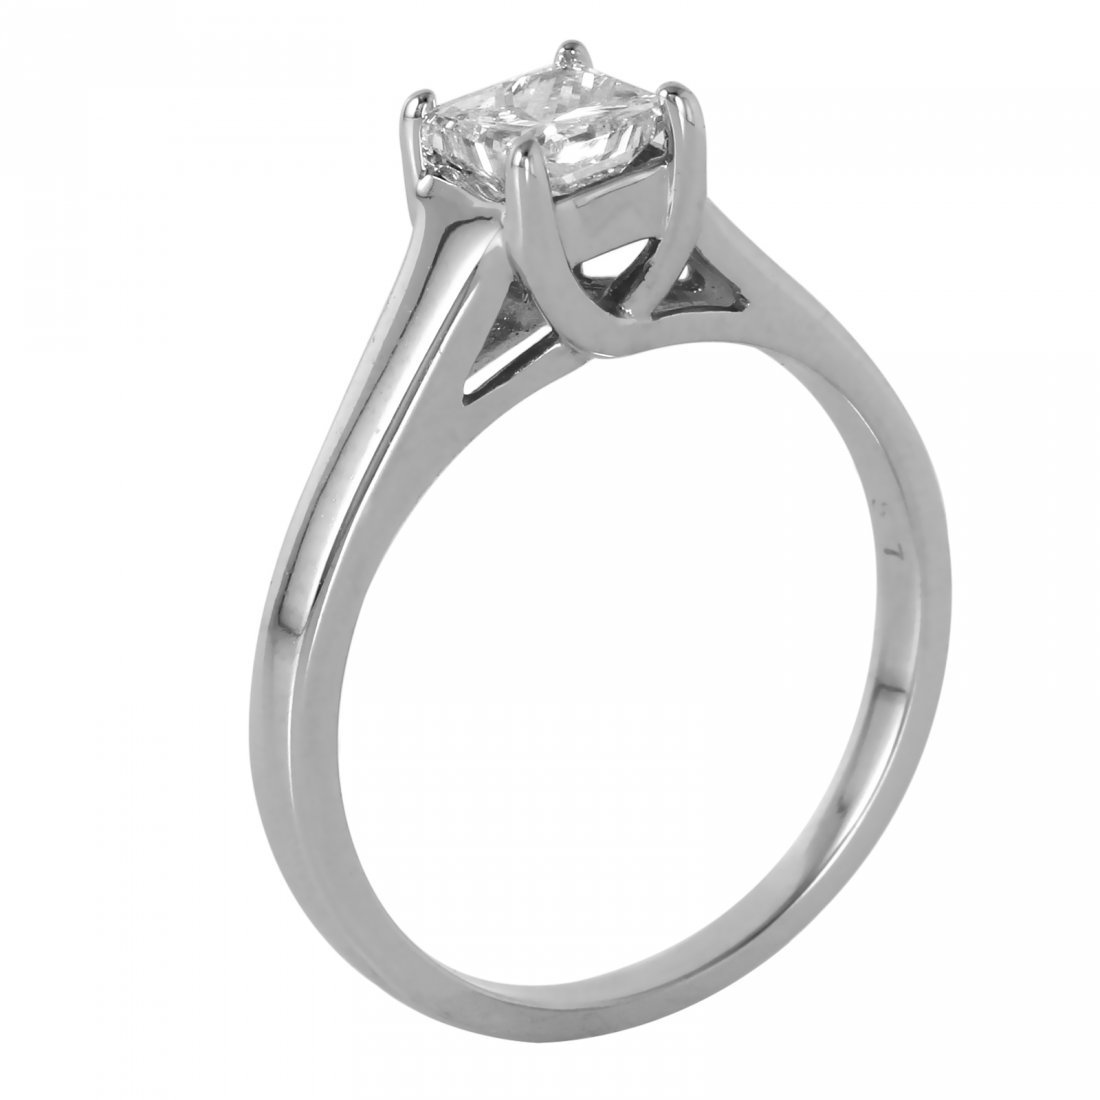 14KT White Gold Diamond Solitaire Ring - 2